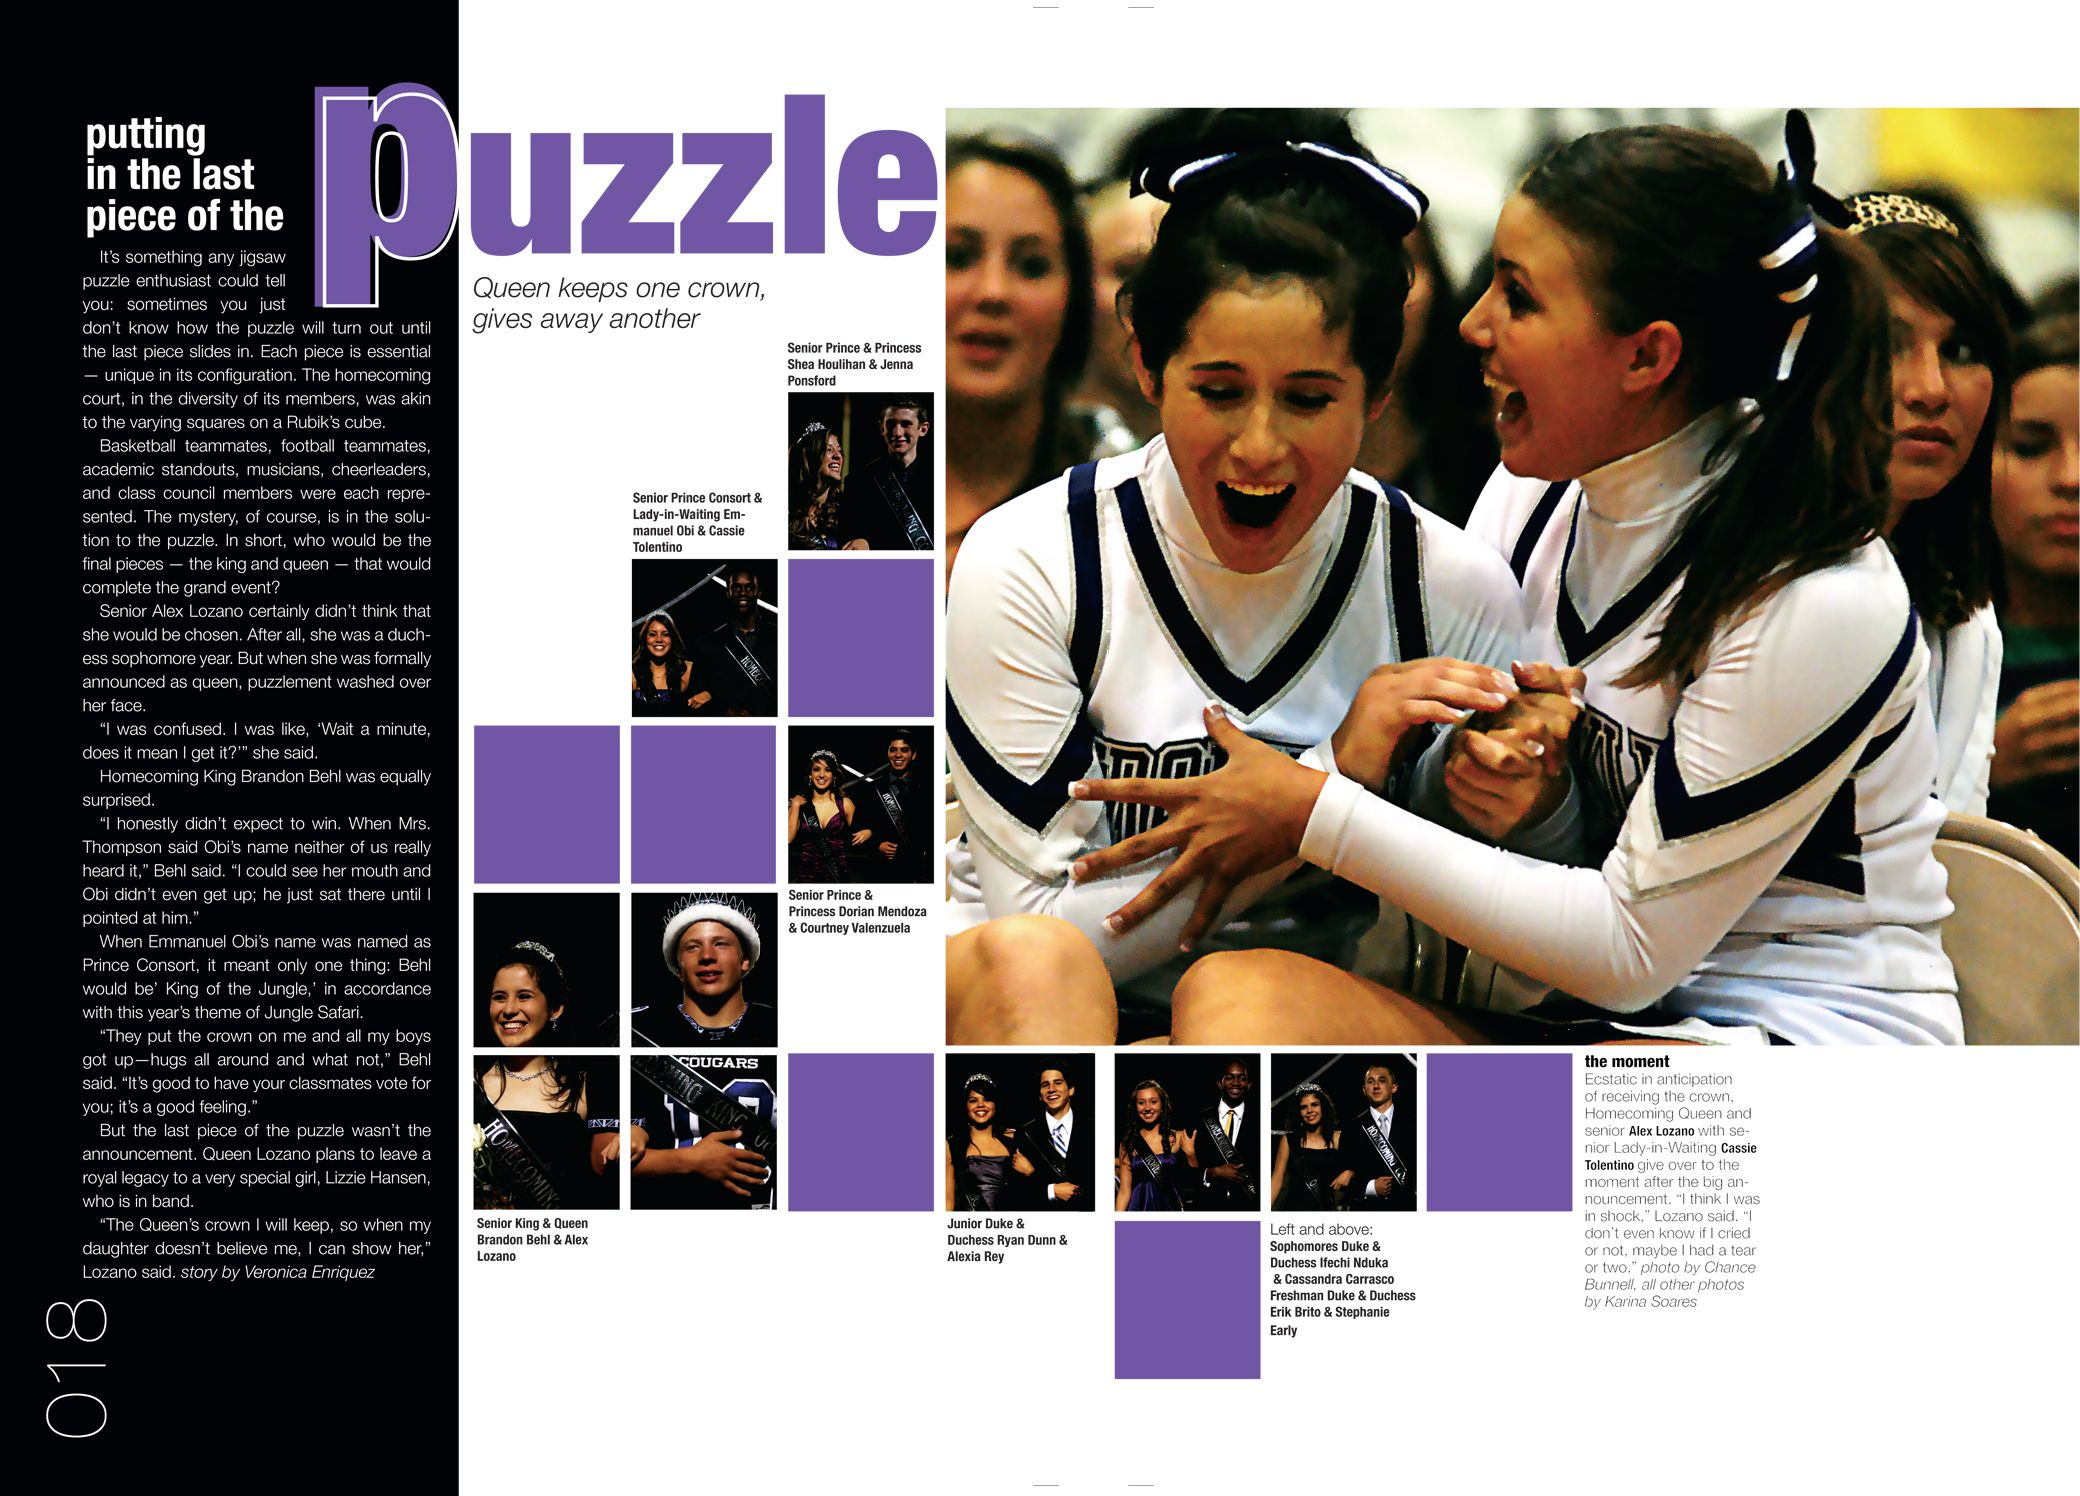 Yearbook Design Ideas yearbook hero 17 Best Images About Yearbook Ideas On Pinterest Spreads Yearbook Design And Yearbook Photos Yearbook